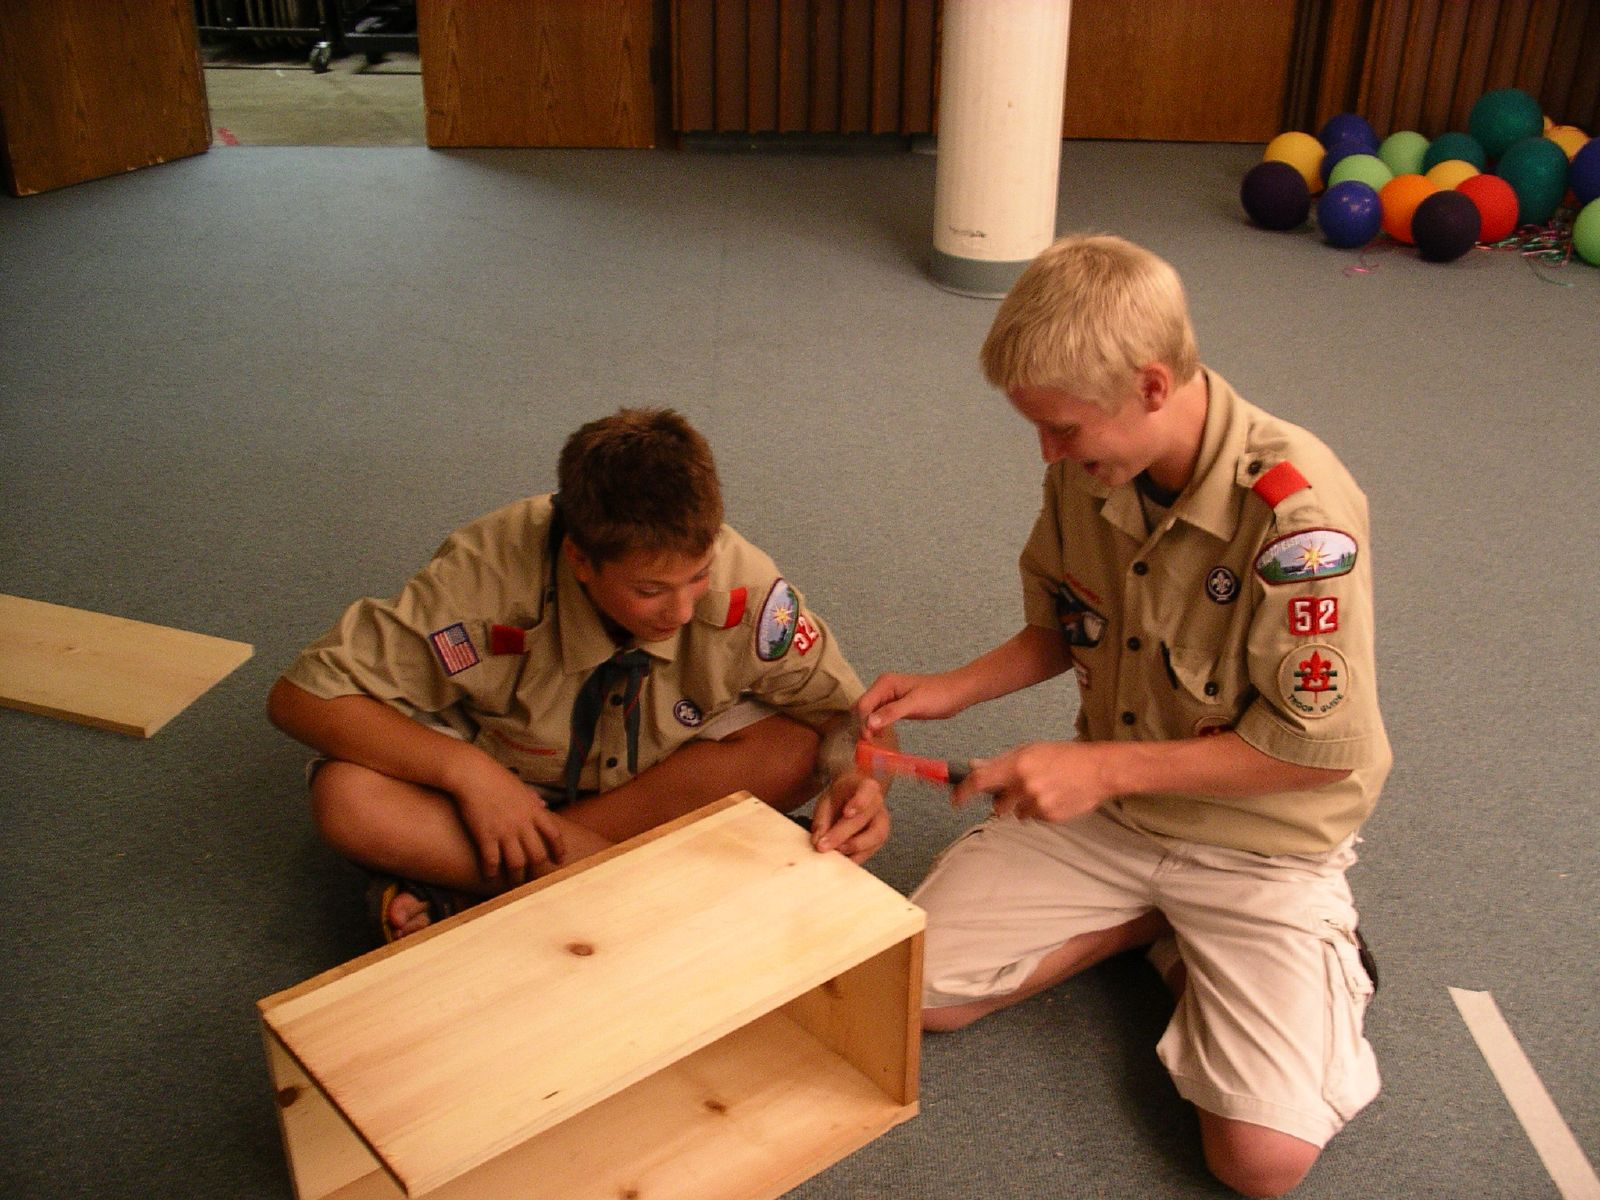 boy scout eagle project Project ideas for boy scouts to do good turns, service, and eagle advancement.